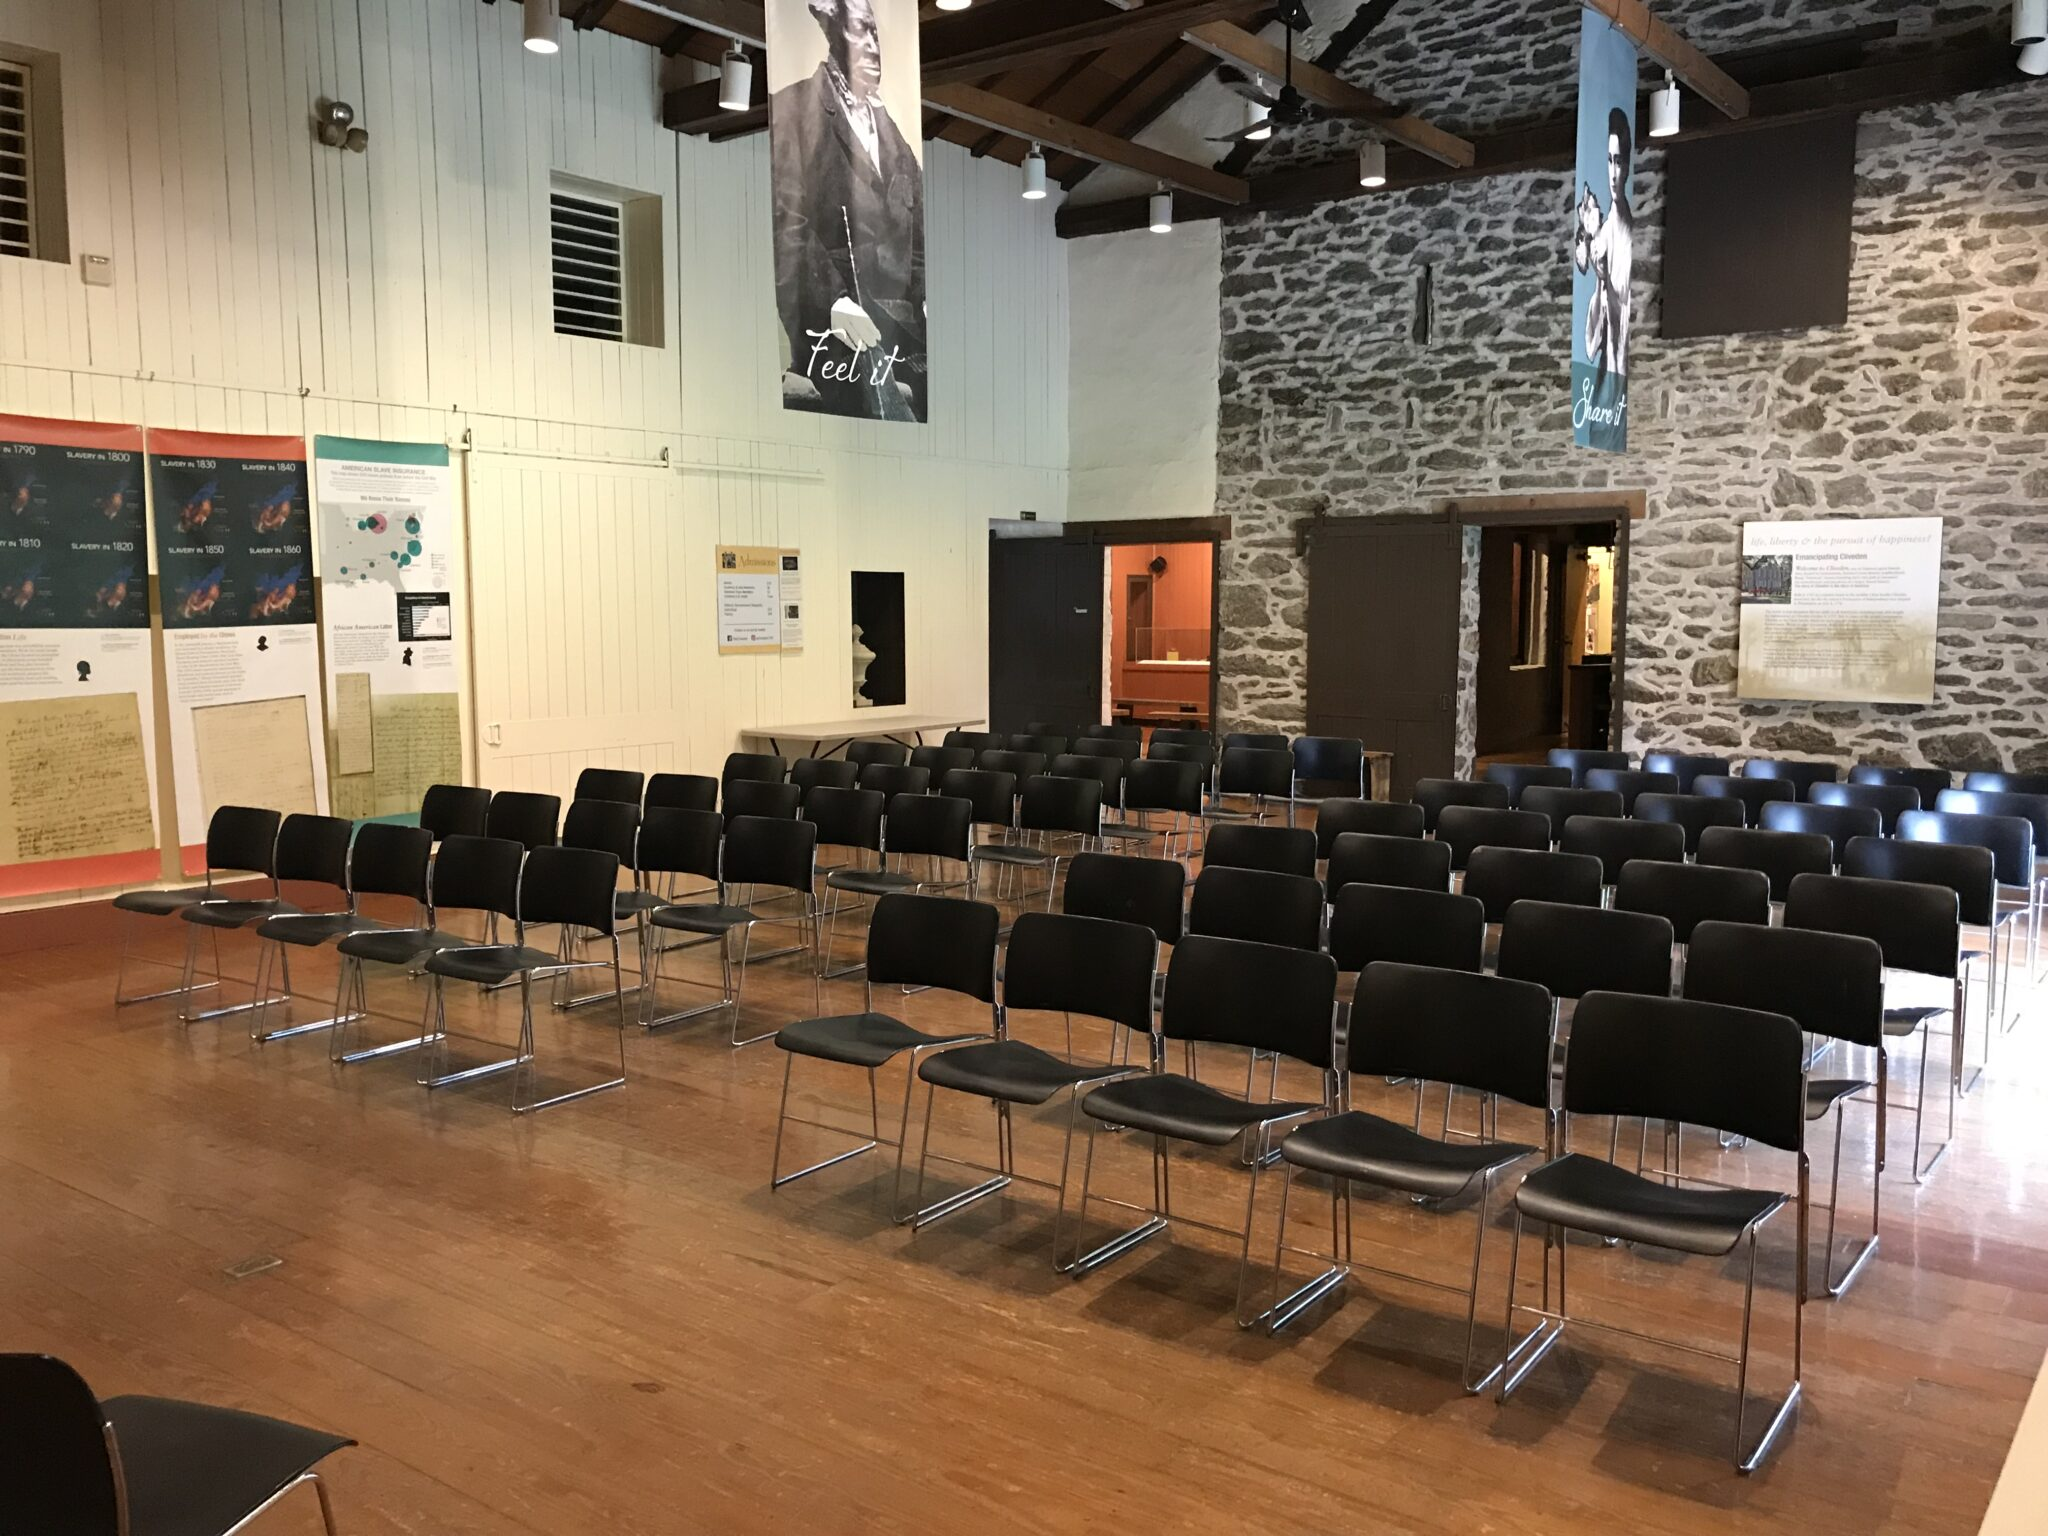 Room with chairs set up for lecture/performance